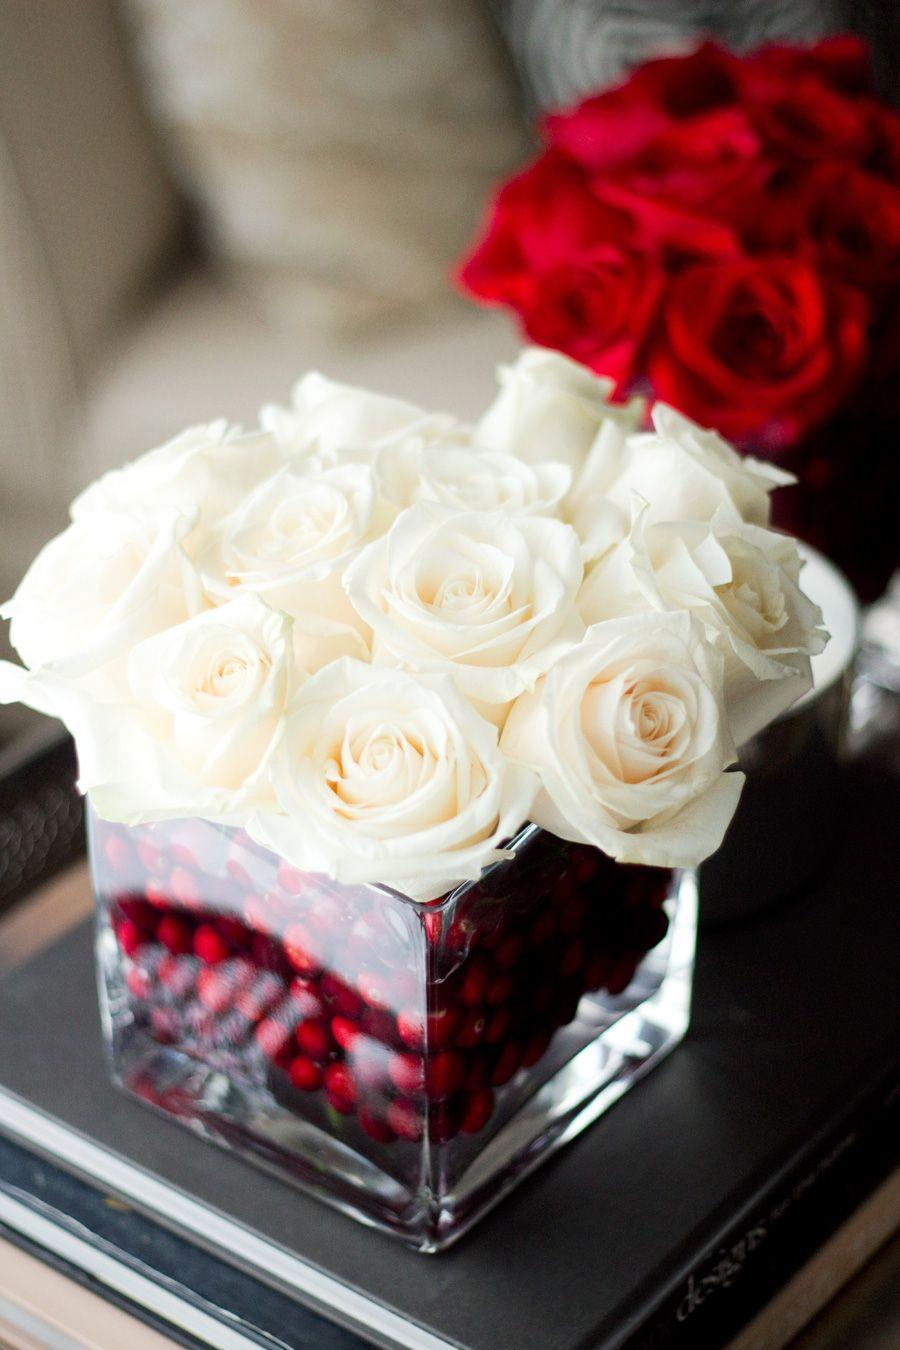 "<p>Get creative with the base filler of your winter floral arrangements—try filling a square vase with fake cranberries before inserting cream colored roses.</p><p>Get the tutorial at <a href=""http://notyourstandard.com/holiday-roses/"" rel=""nofollow noopener"" target=""_blank"" data-ylk=""slk:Not Your Standard"" class=""link rapid-noclick-resp"">Not Your Standard</a>.</p>"